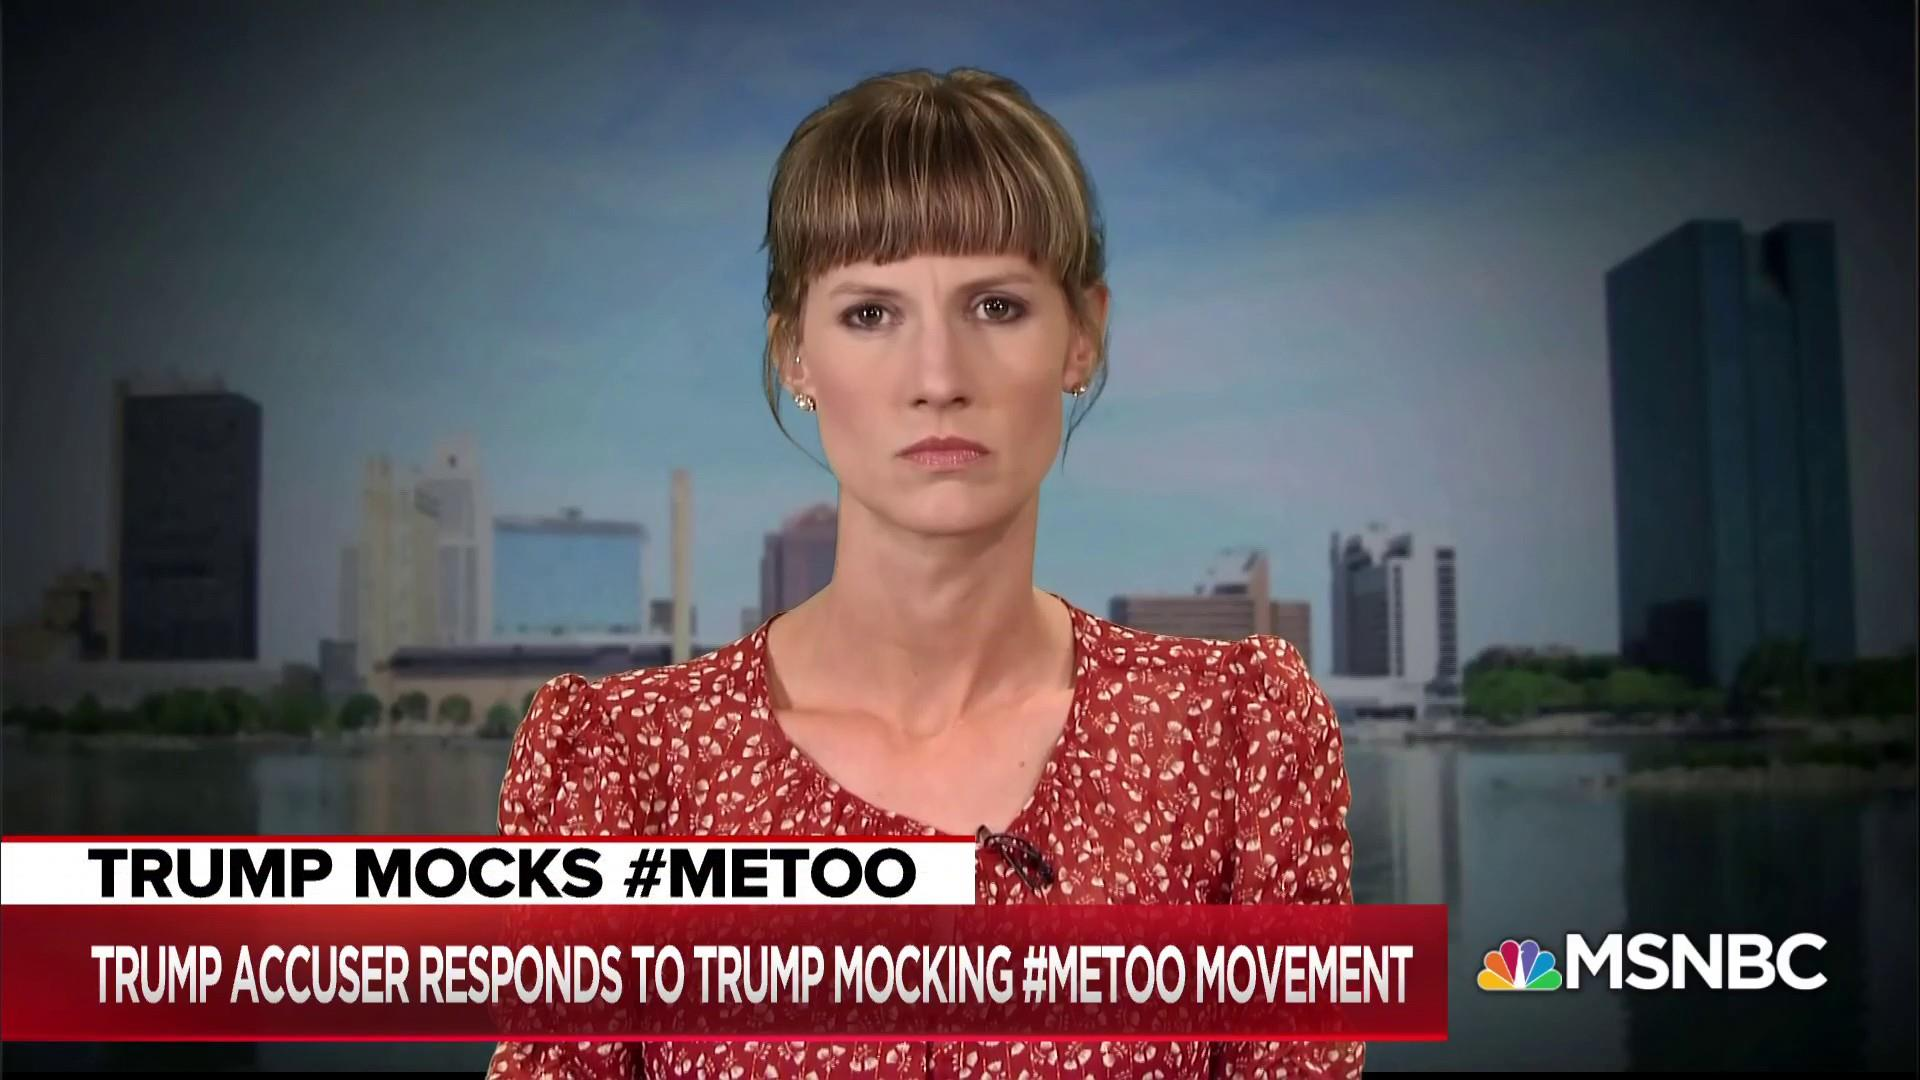 Trump accuser: 'Despicable' Trump mocks the 'Me Too' movement